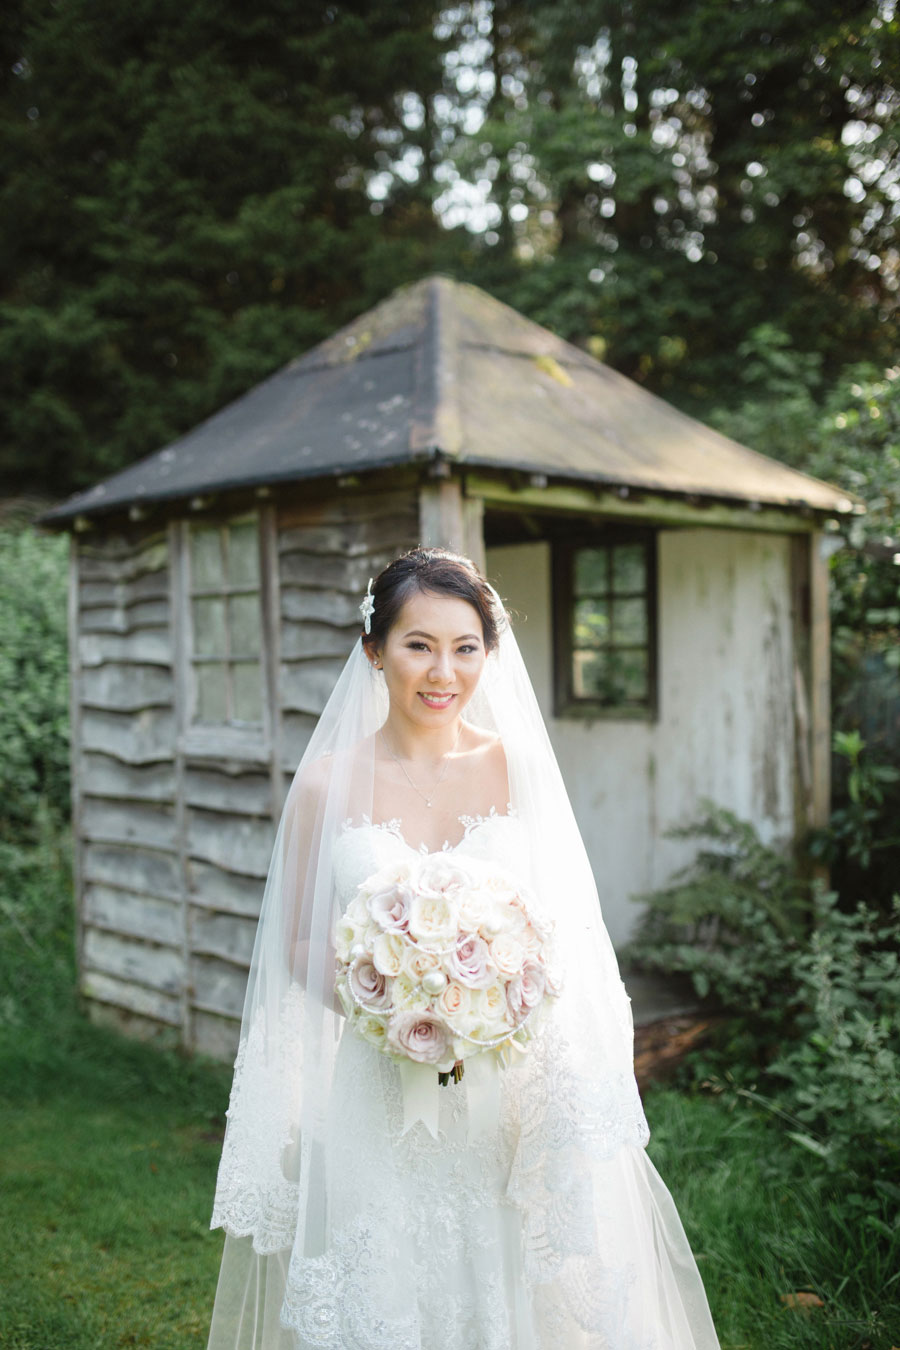 Stately Home Ballroom Wedding With Romantic Vintage Style: Tania ...